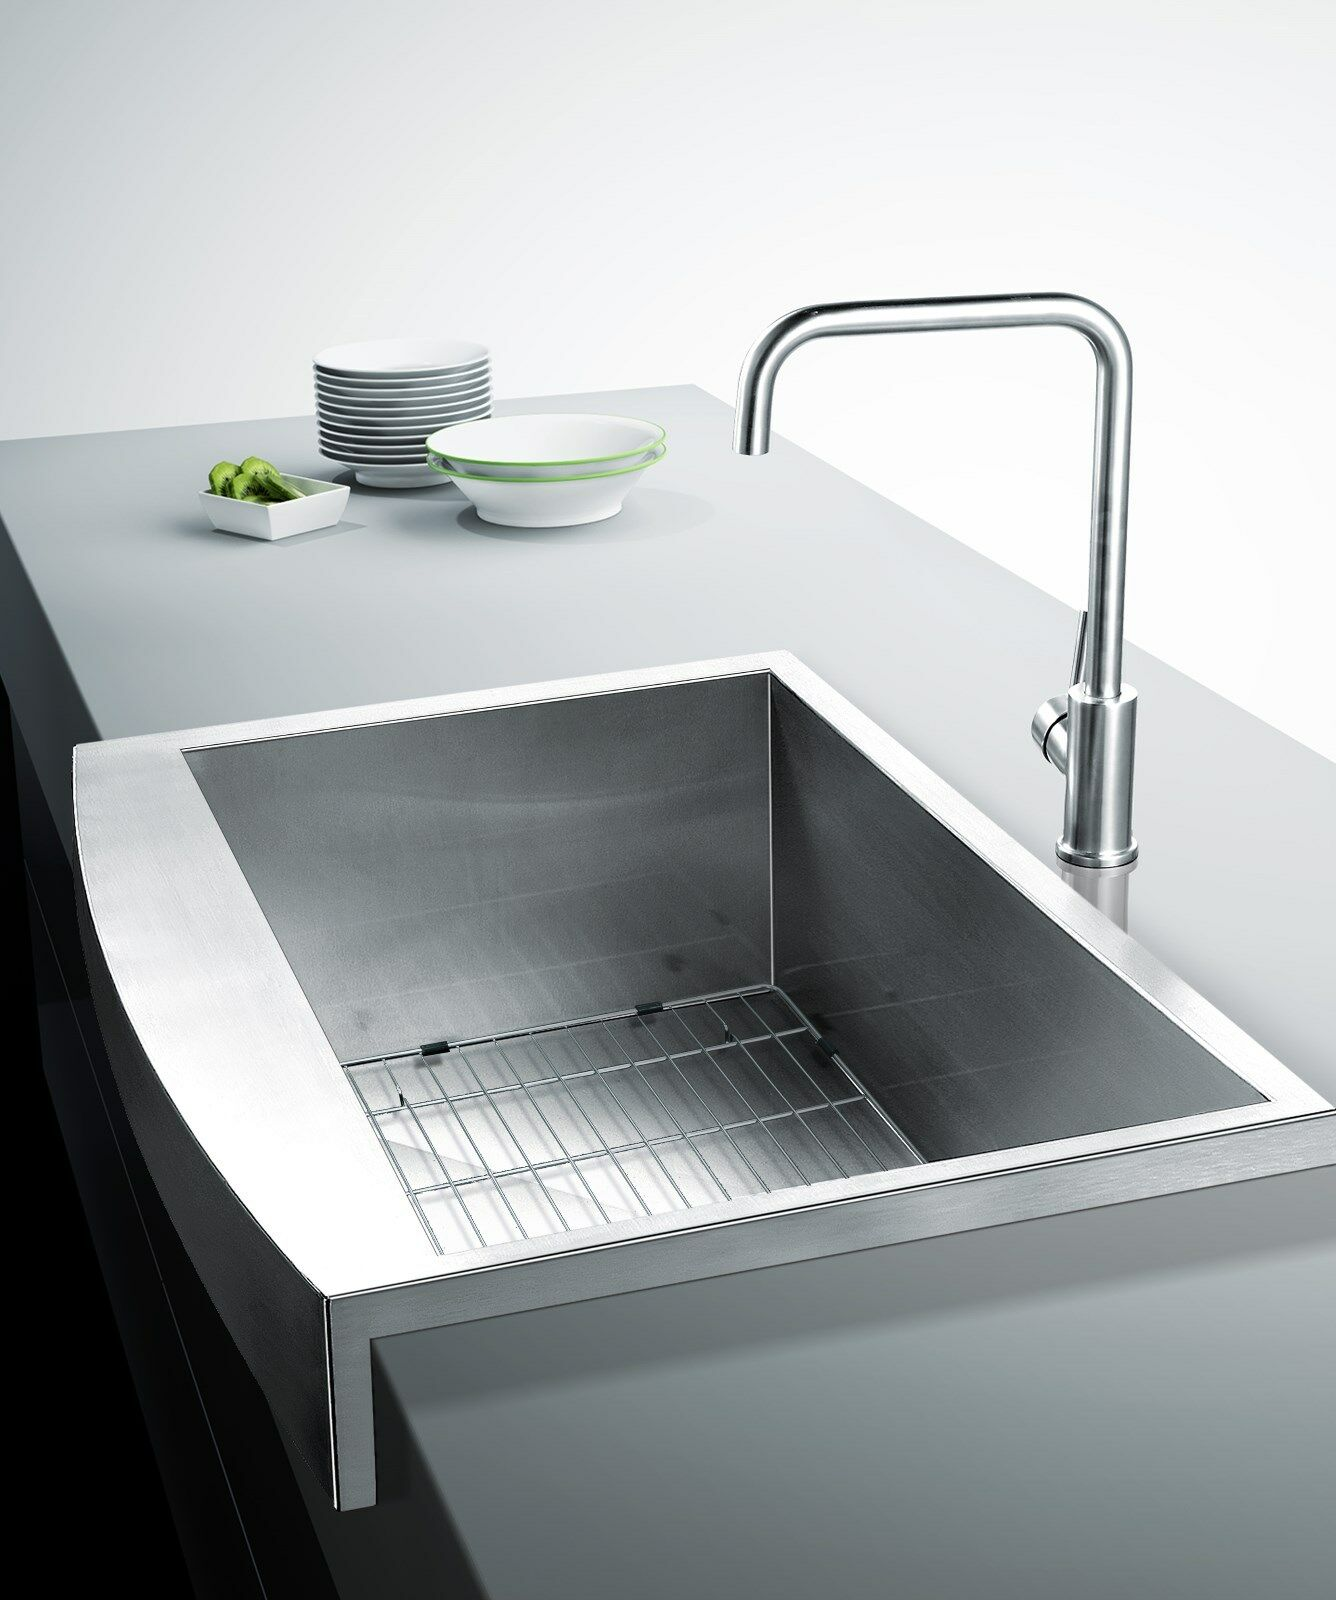 New Vs Old Kitchen Sinks